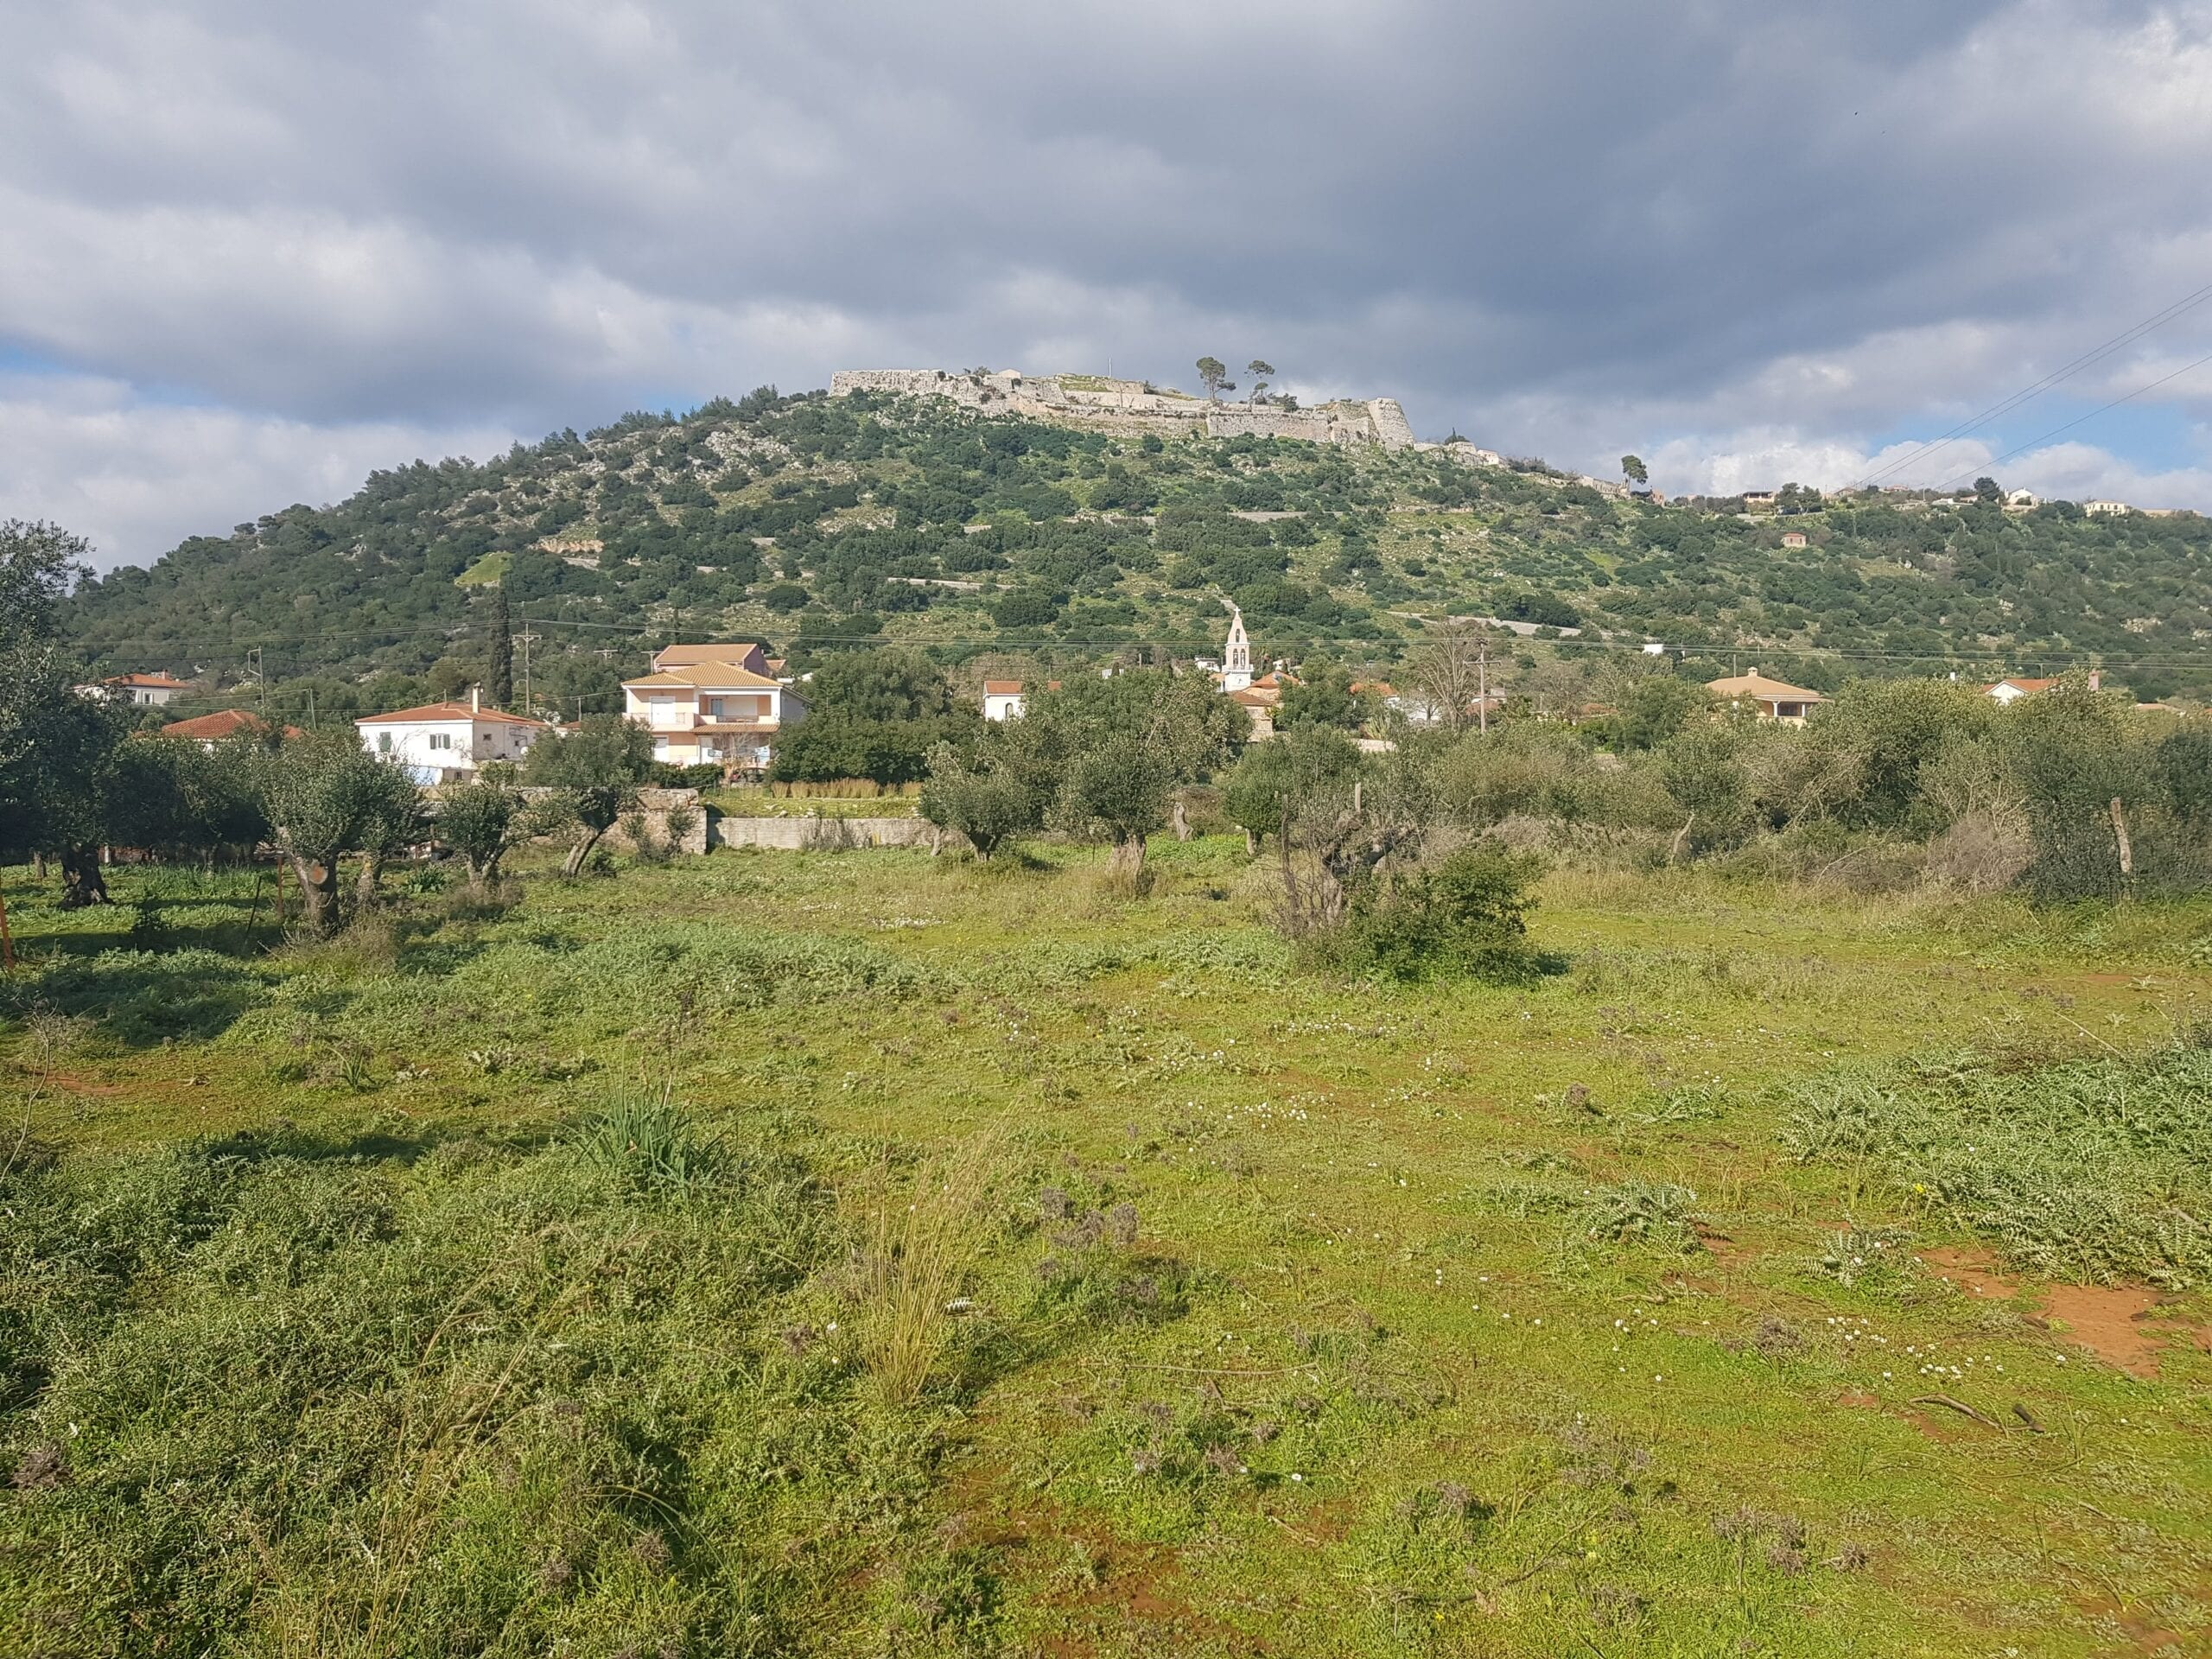 Plot for sale in Travliata with amazing views of Saint George's castle